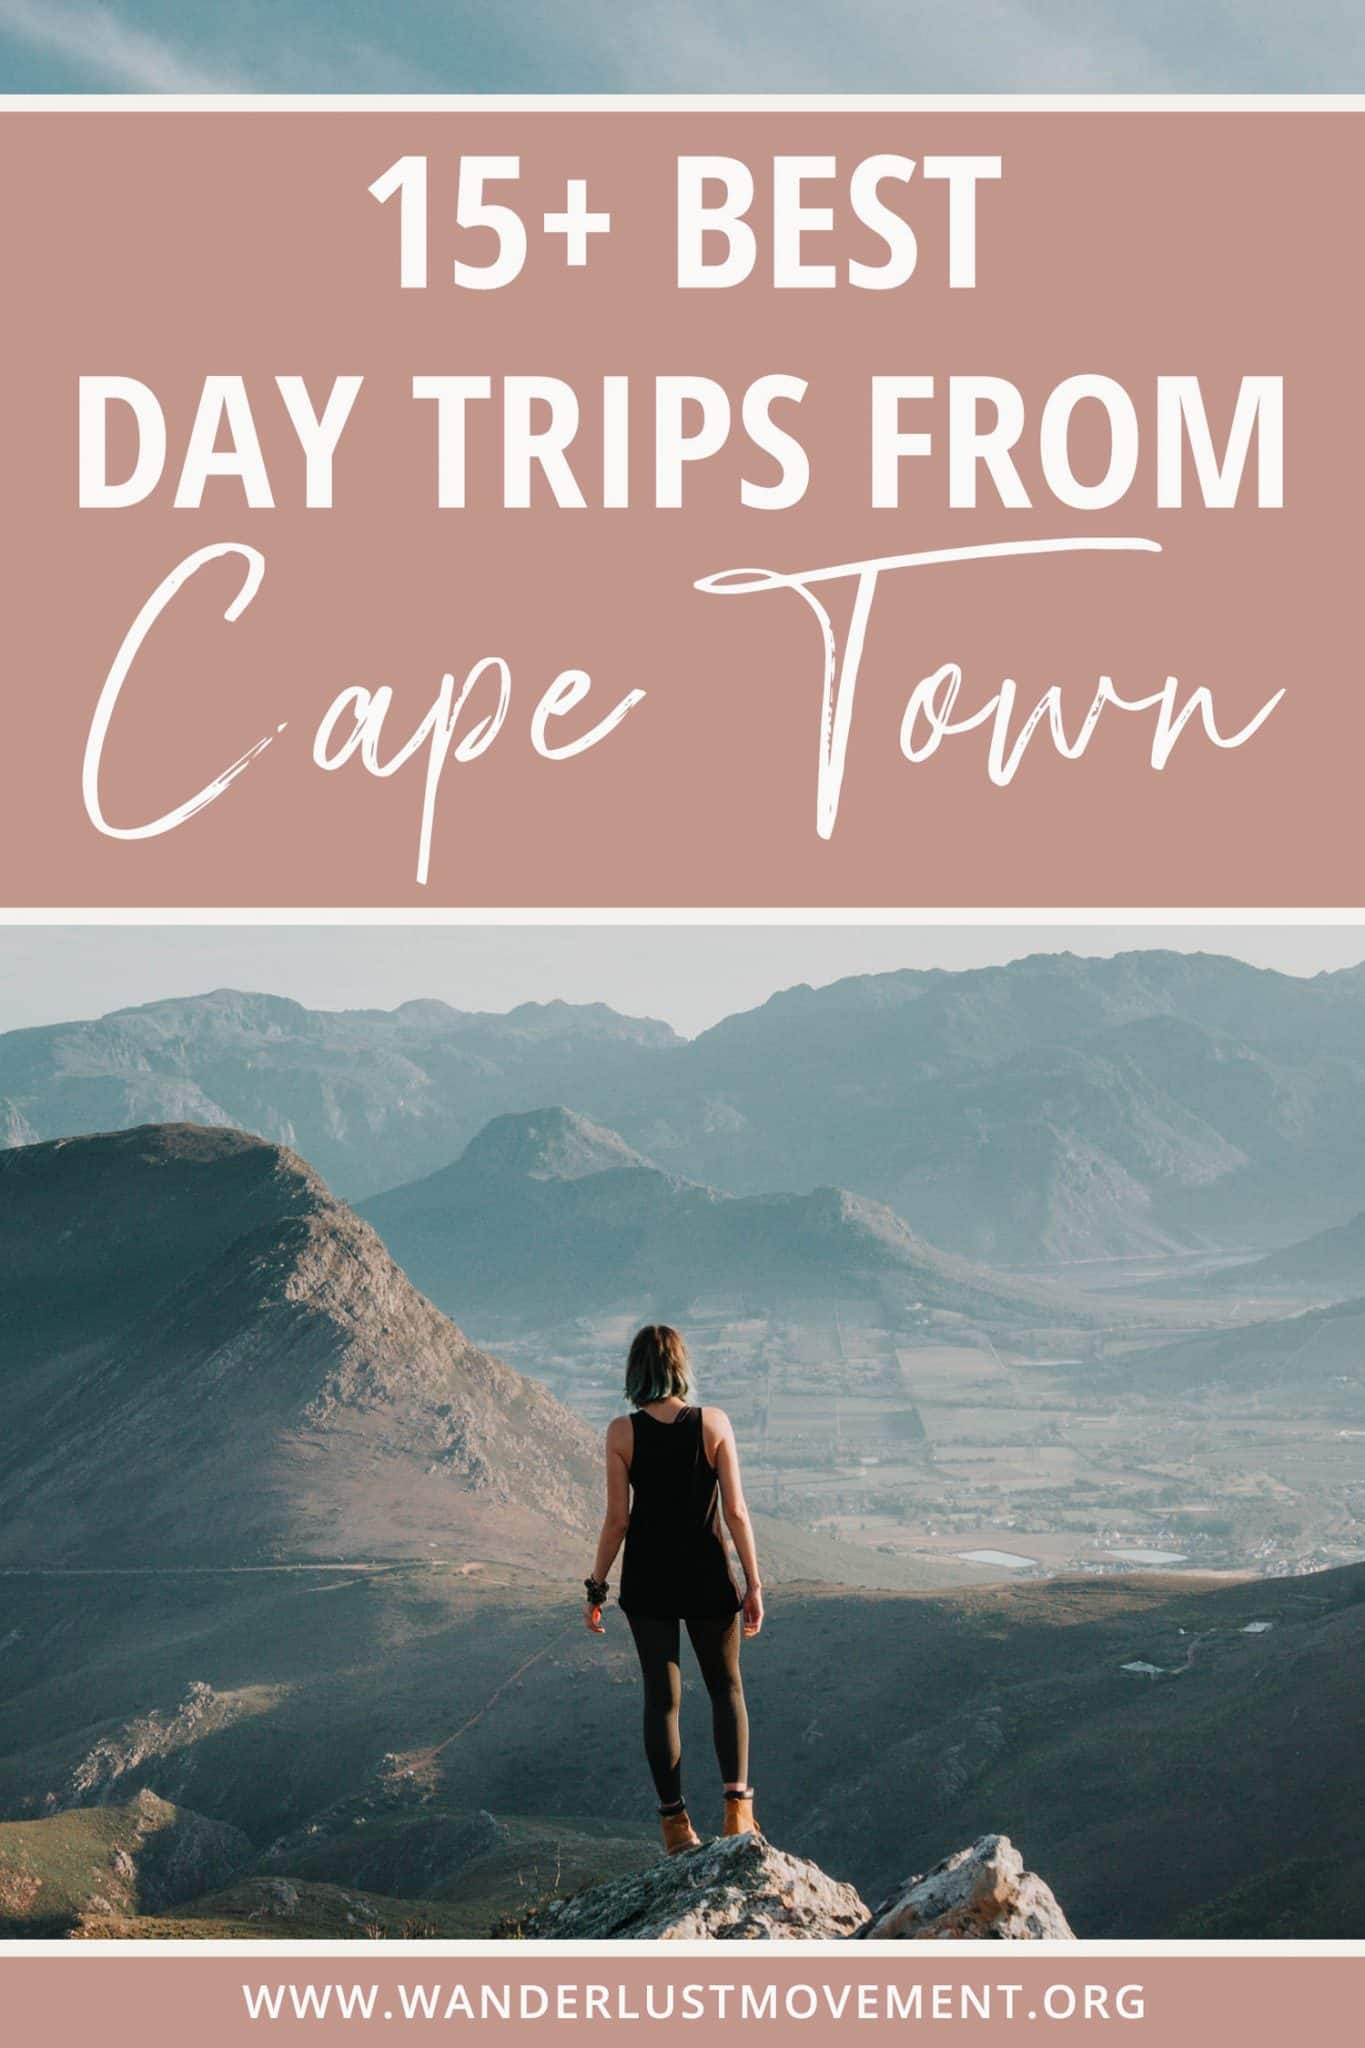 15+ Irresistible Day Trips from Cape Town